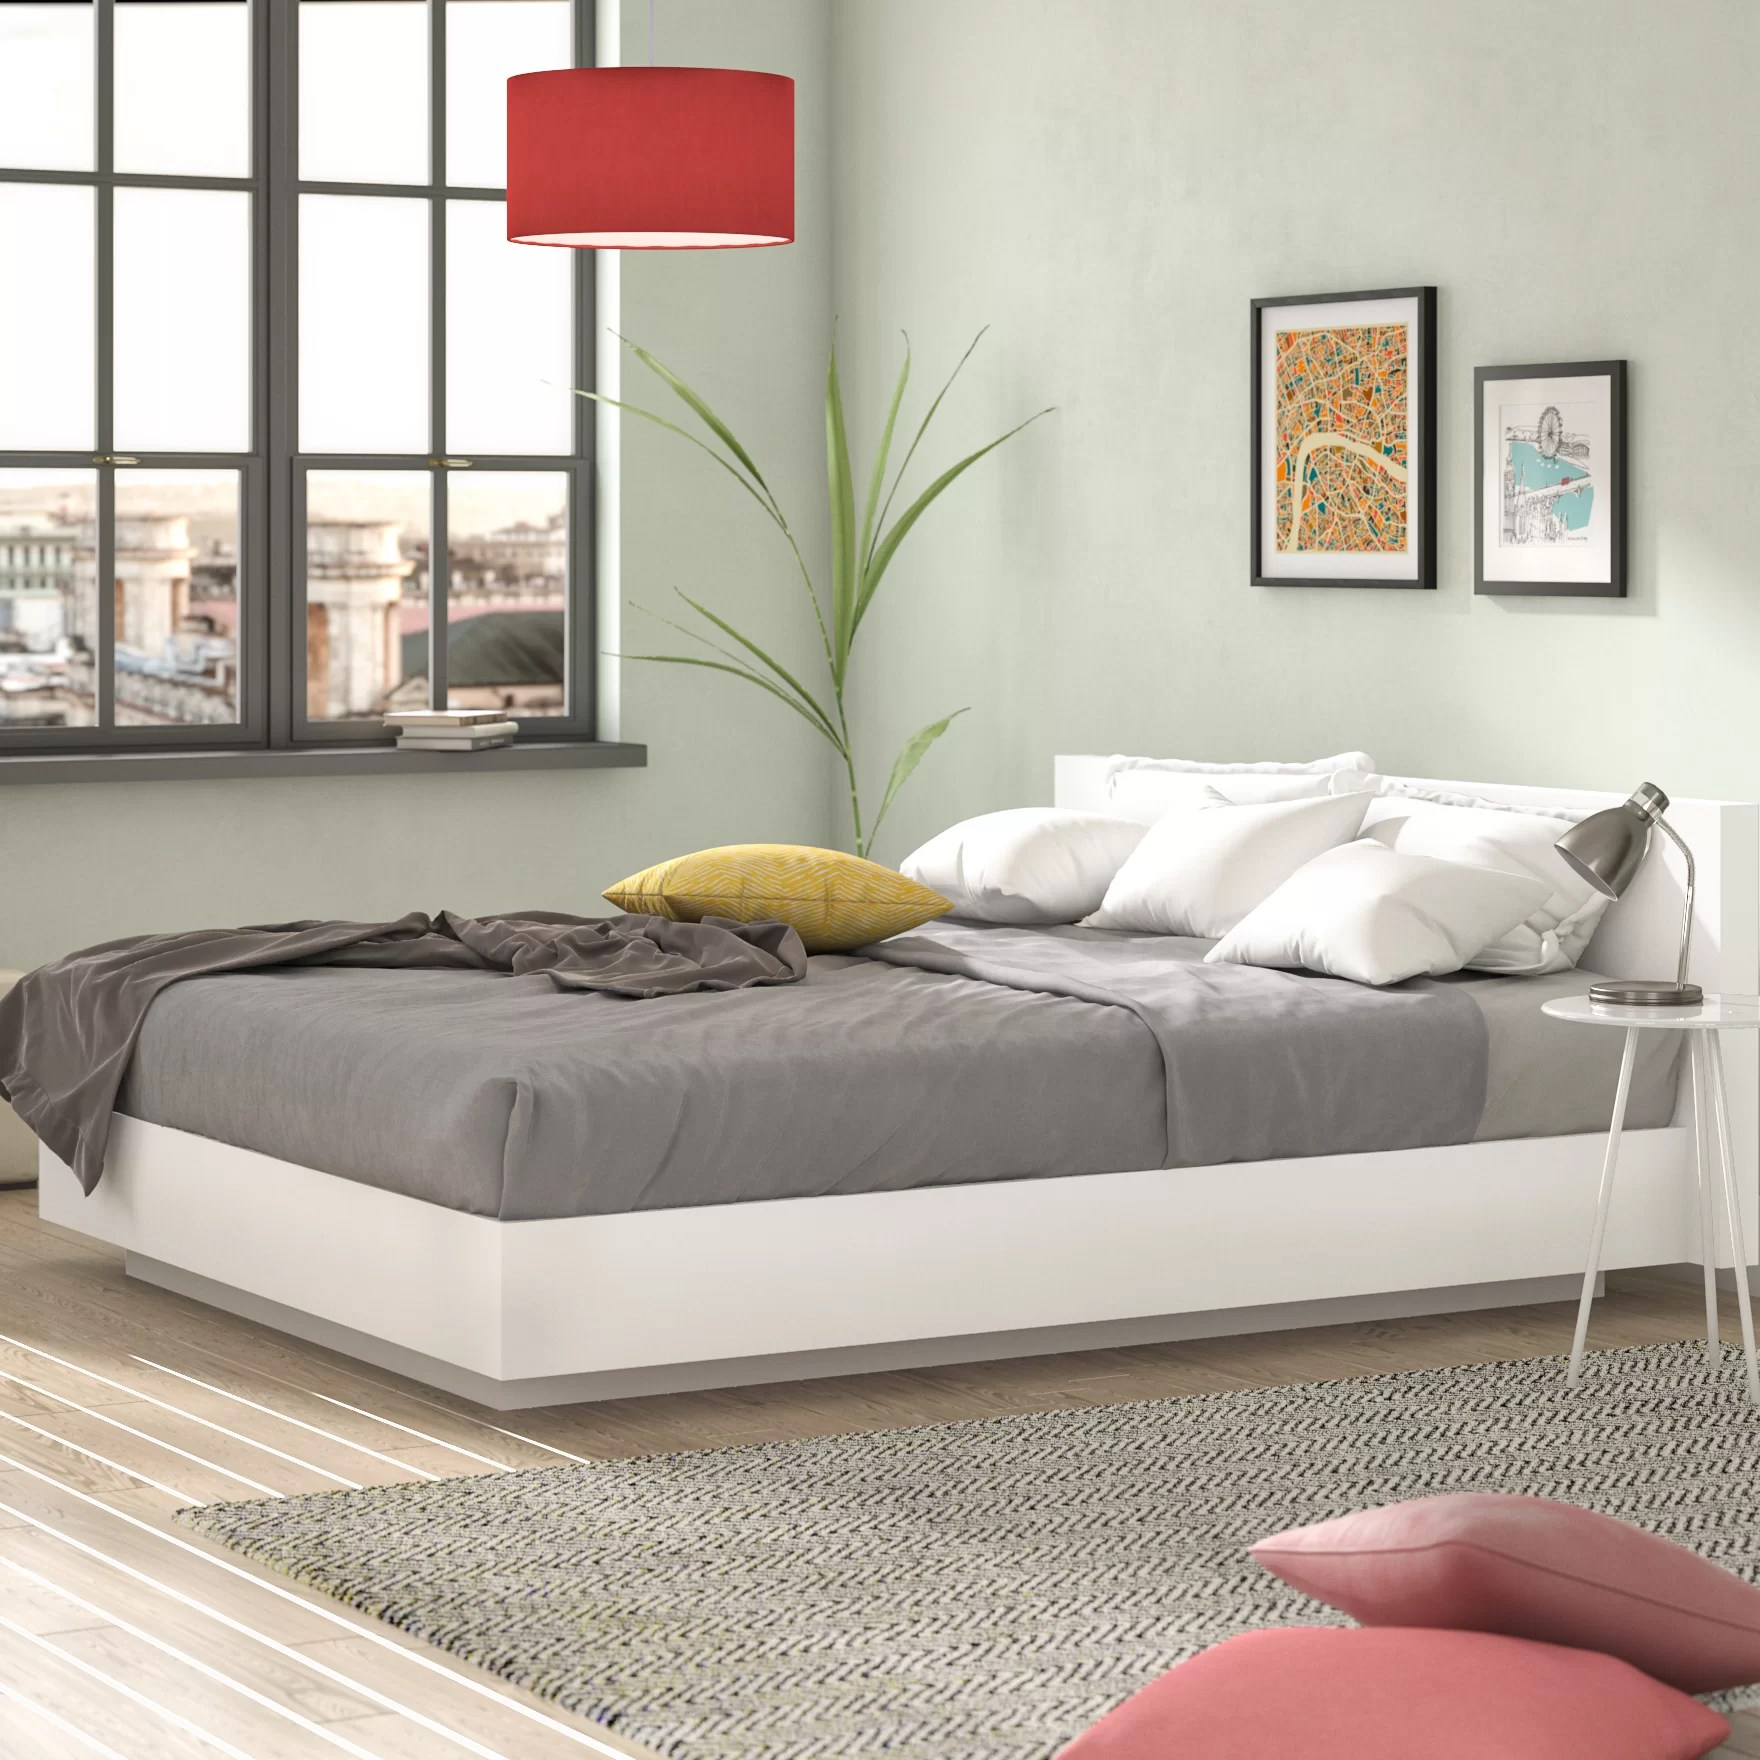 How Big Is A Super King Bed Gerald Super King 6 Size Platform Bed Frame